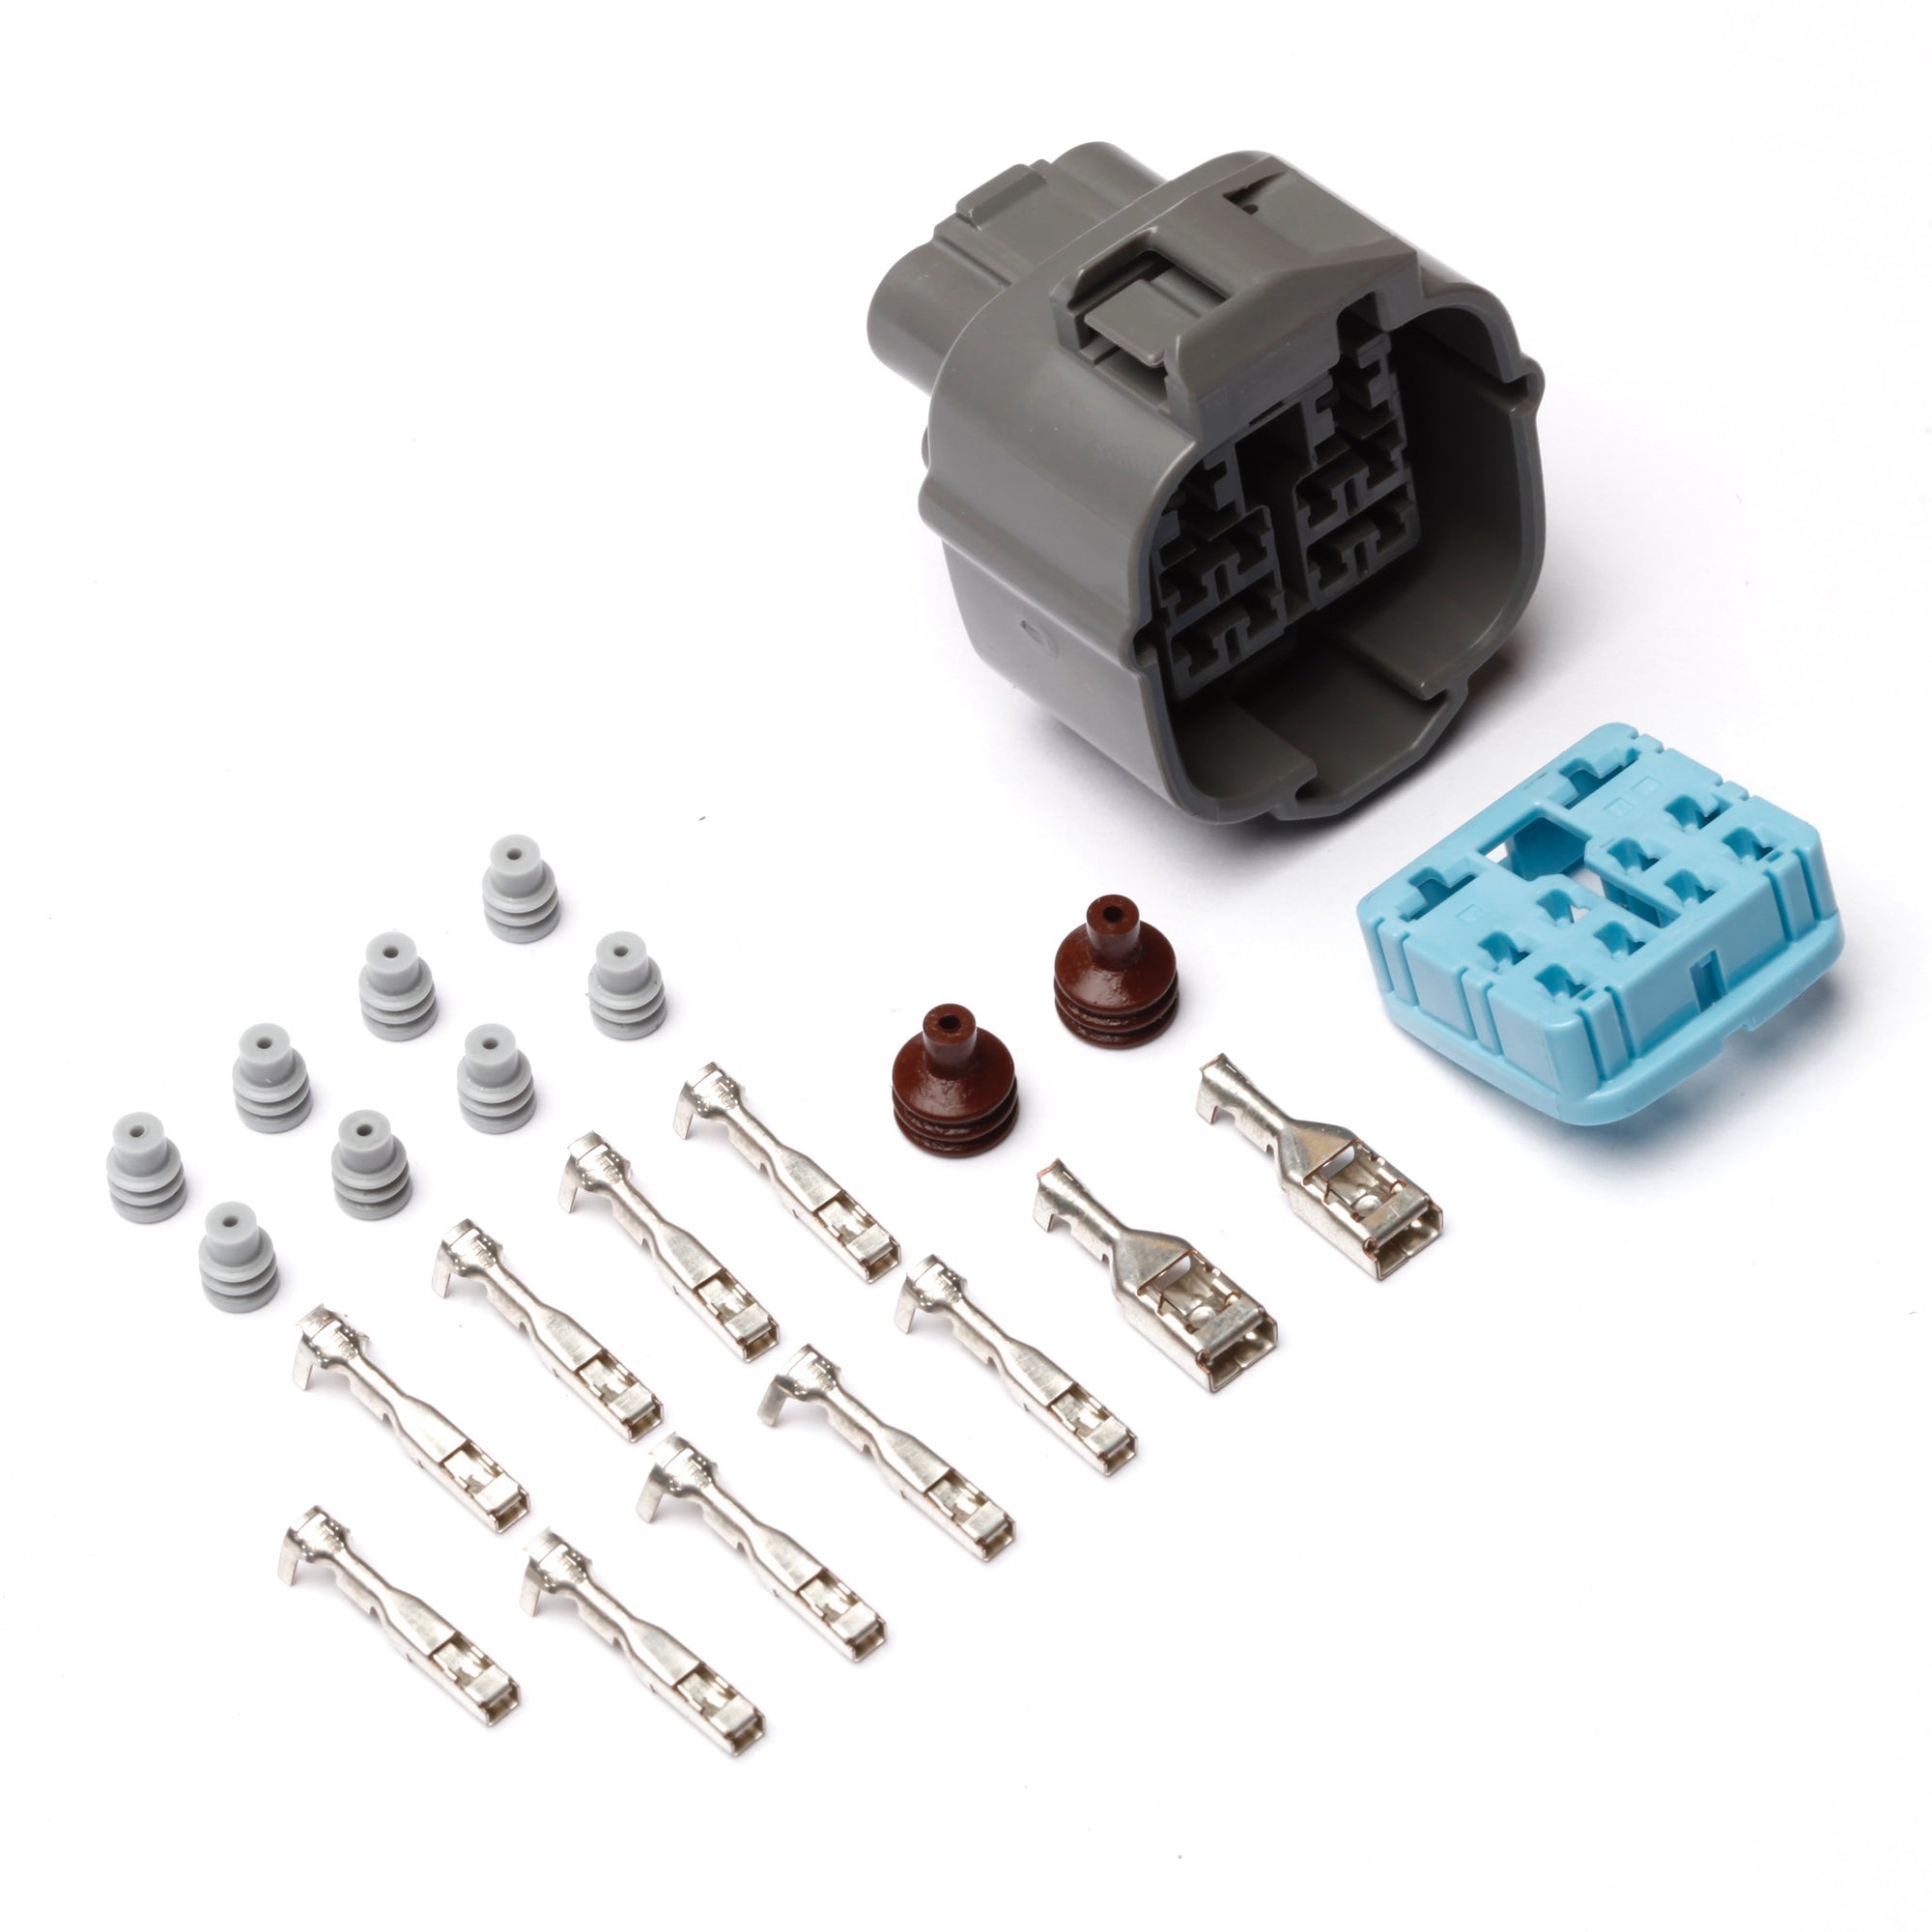 Connectors - Honda OBD2 Distributor Plug Connector Kit